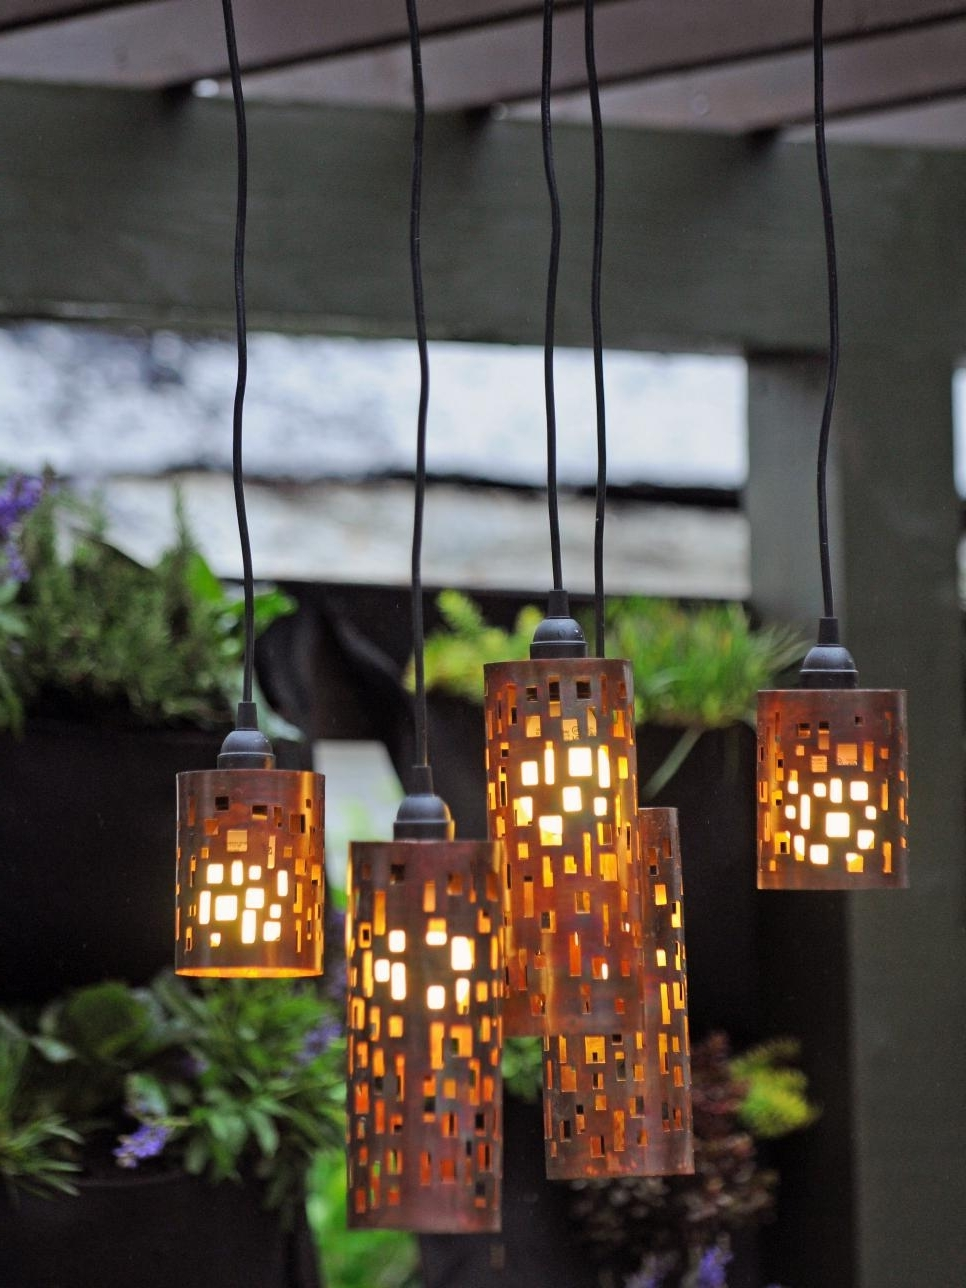 Favorite Outdoor Lighting: Amusing Outdoor Hanging Lights Patio How To Hang Intended For Outdoor Ceiling Lights For Patio (View 5 of 20)